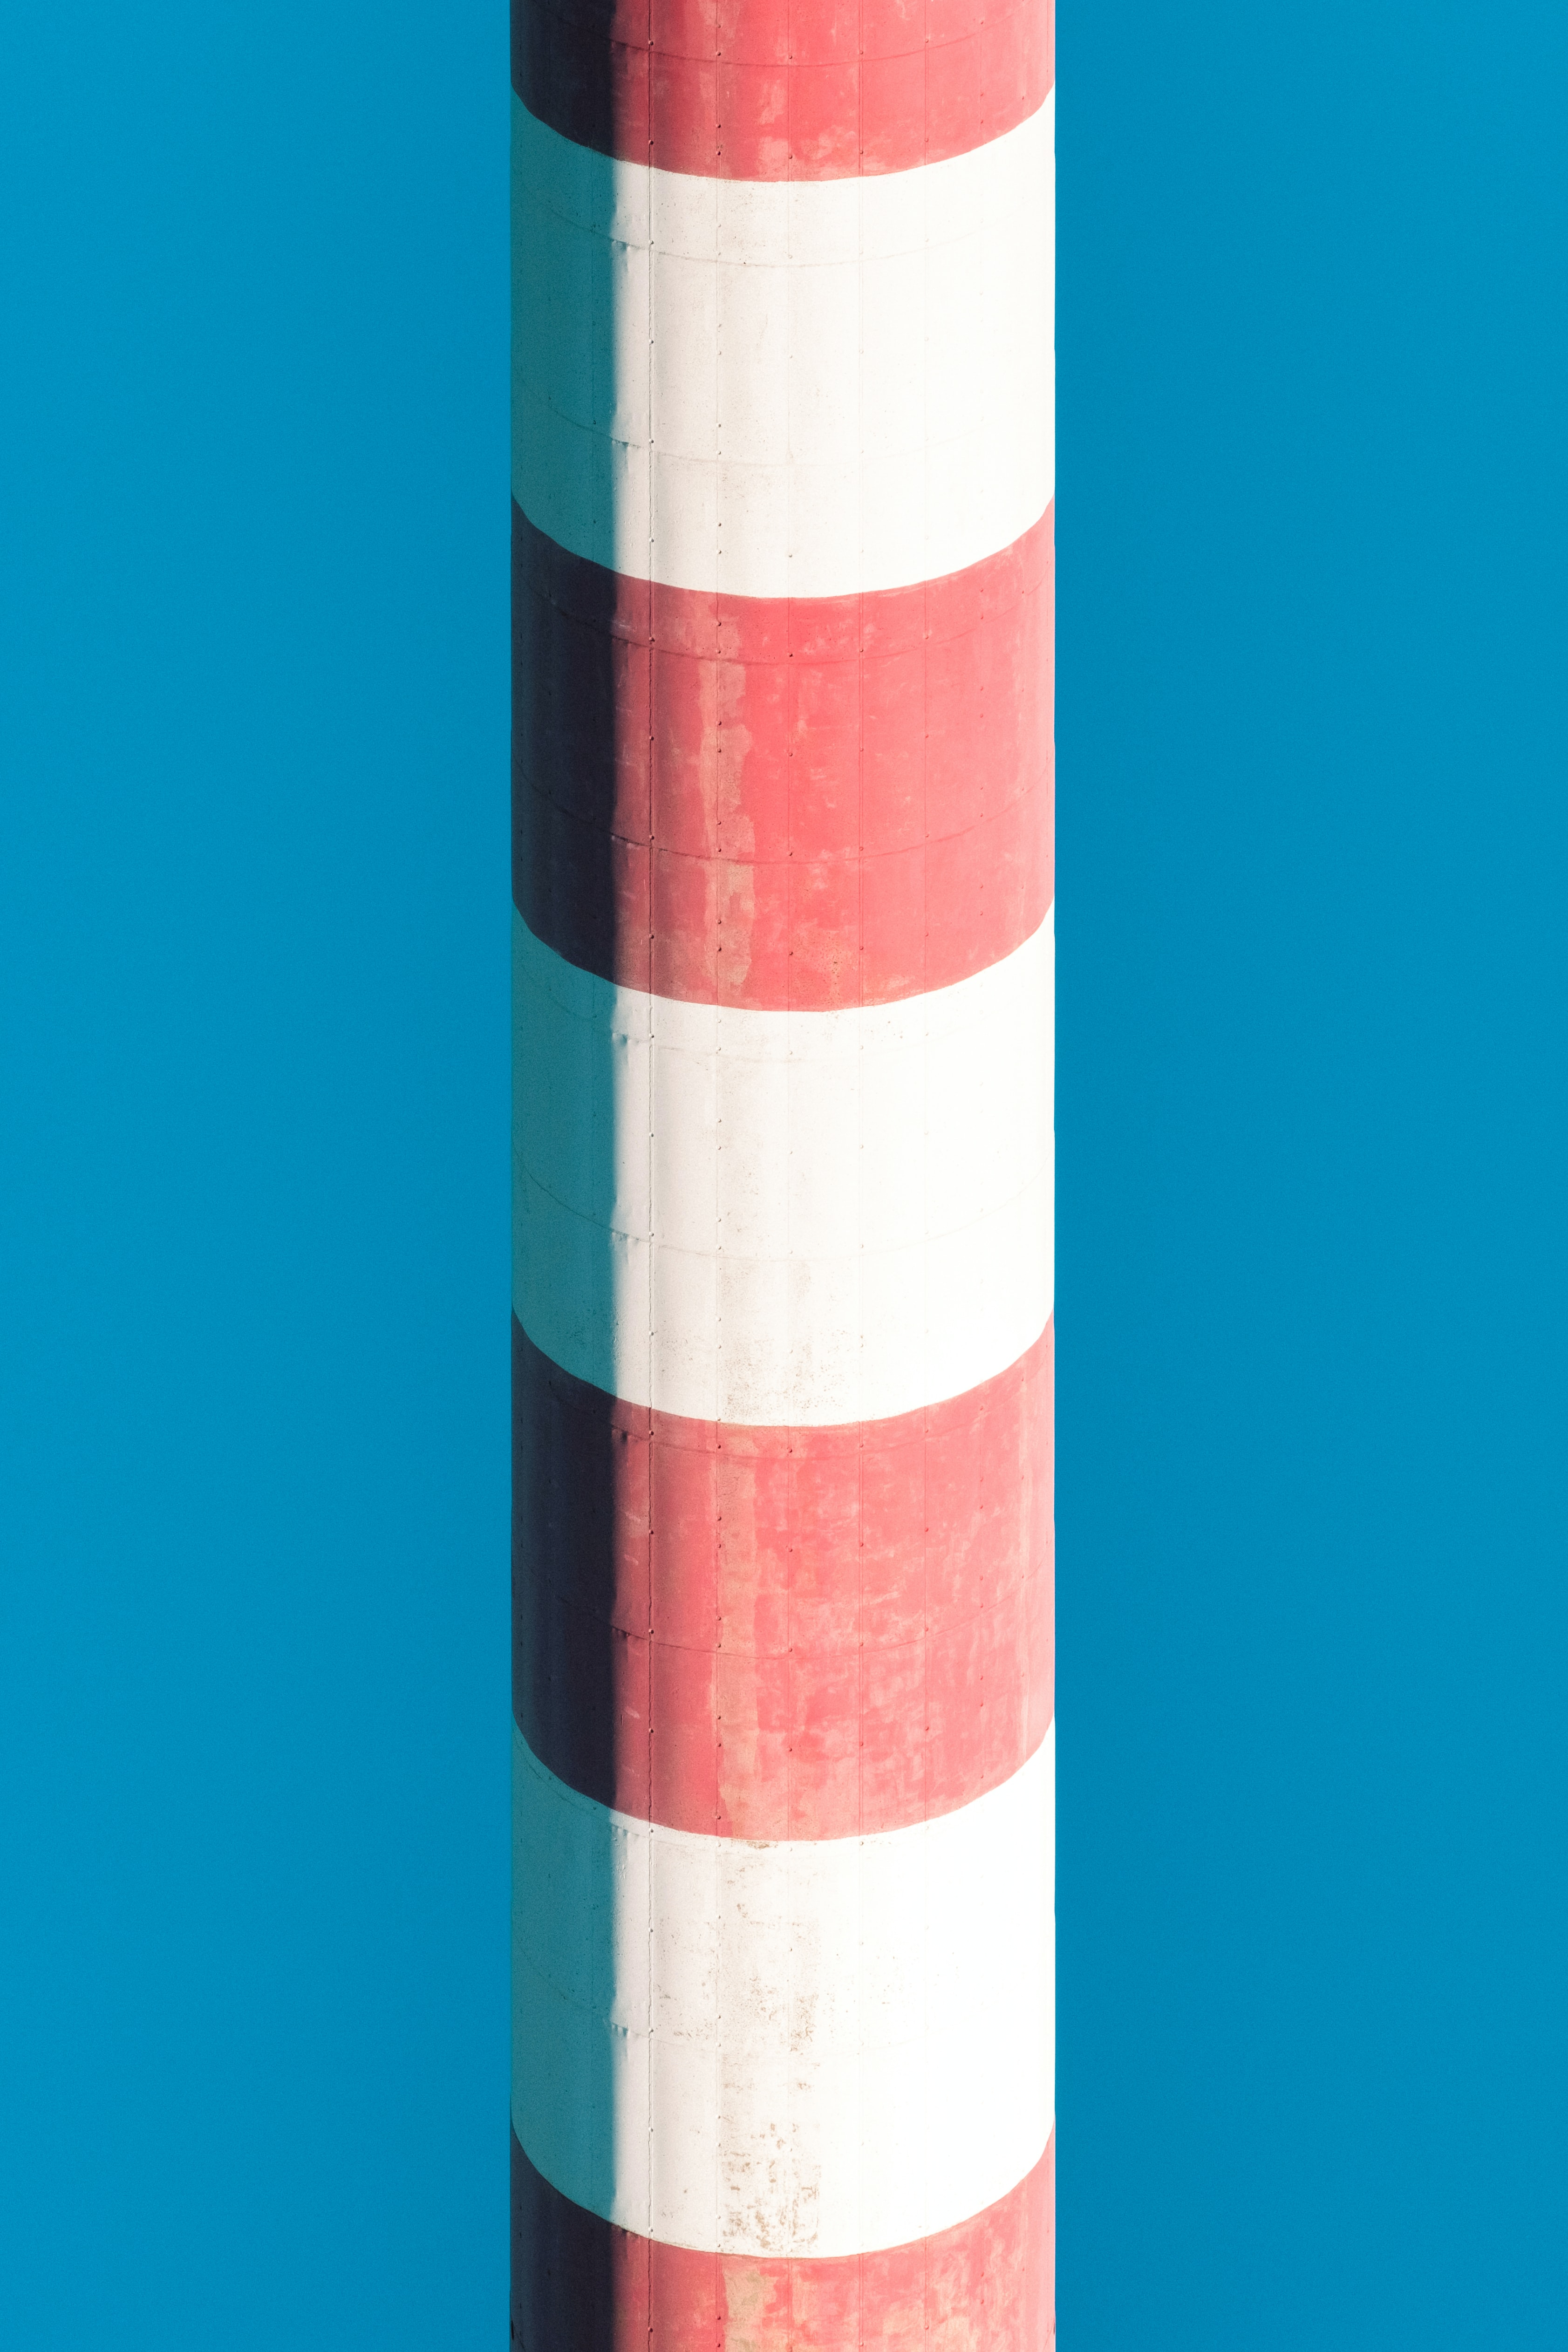 white and red striped pillar on blue background